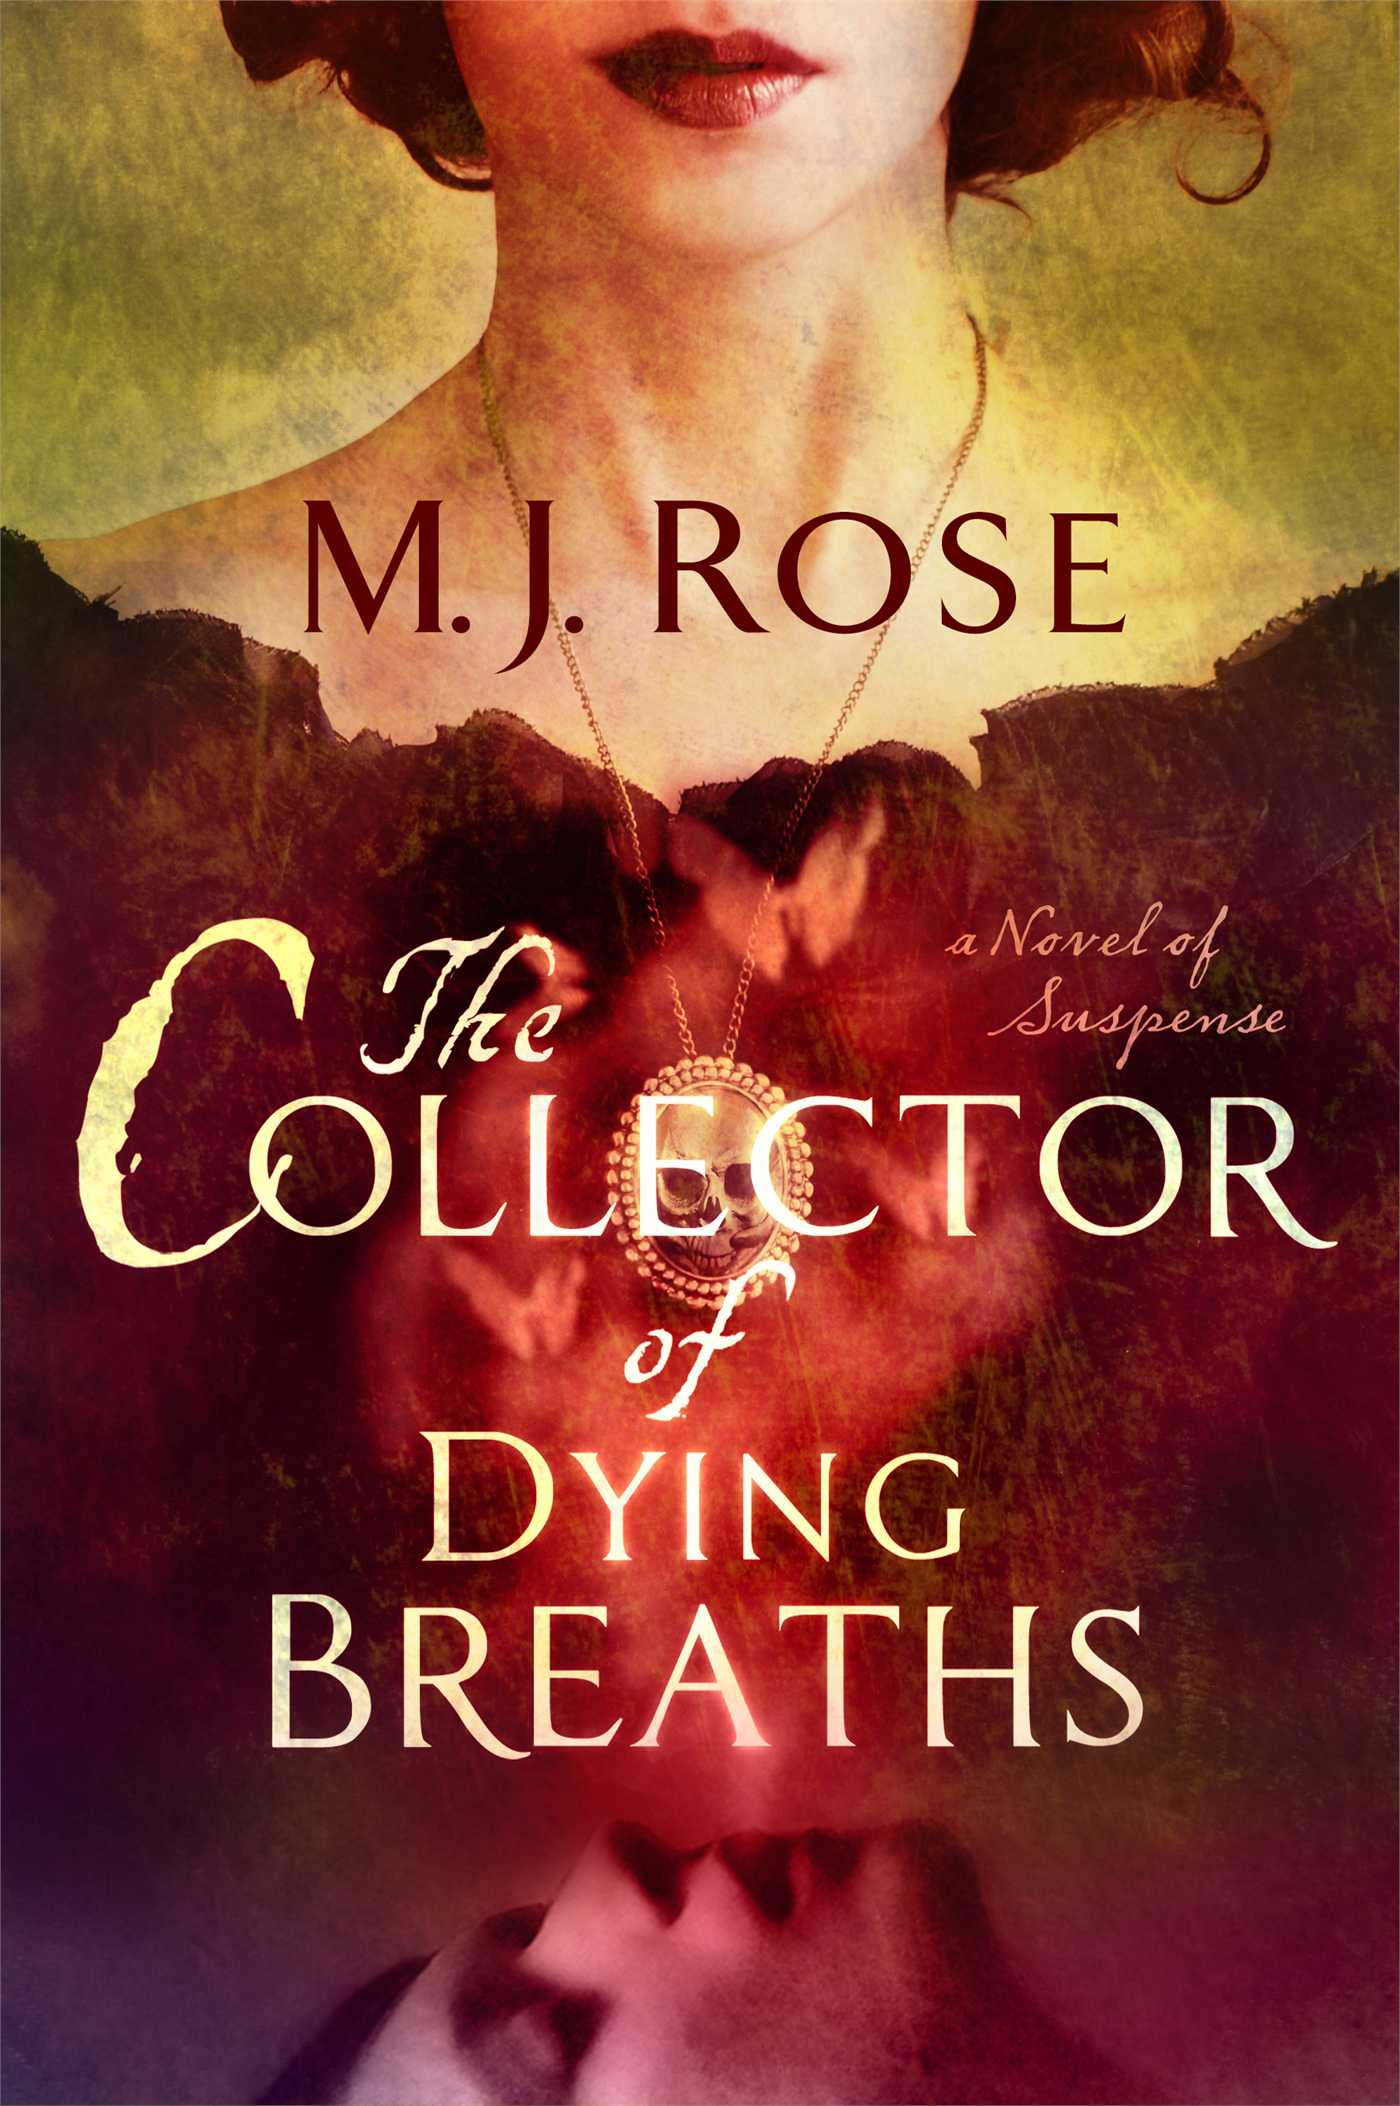 Collector-of-dying-breaths-9781451621556_hr